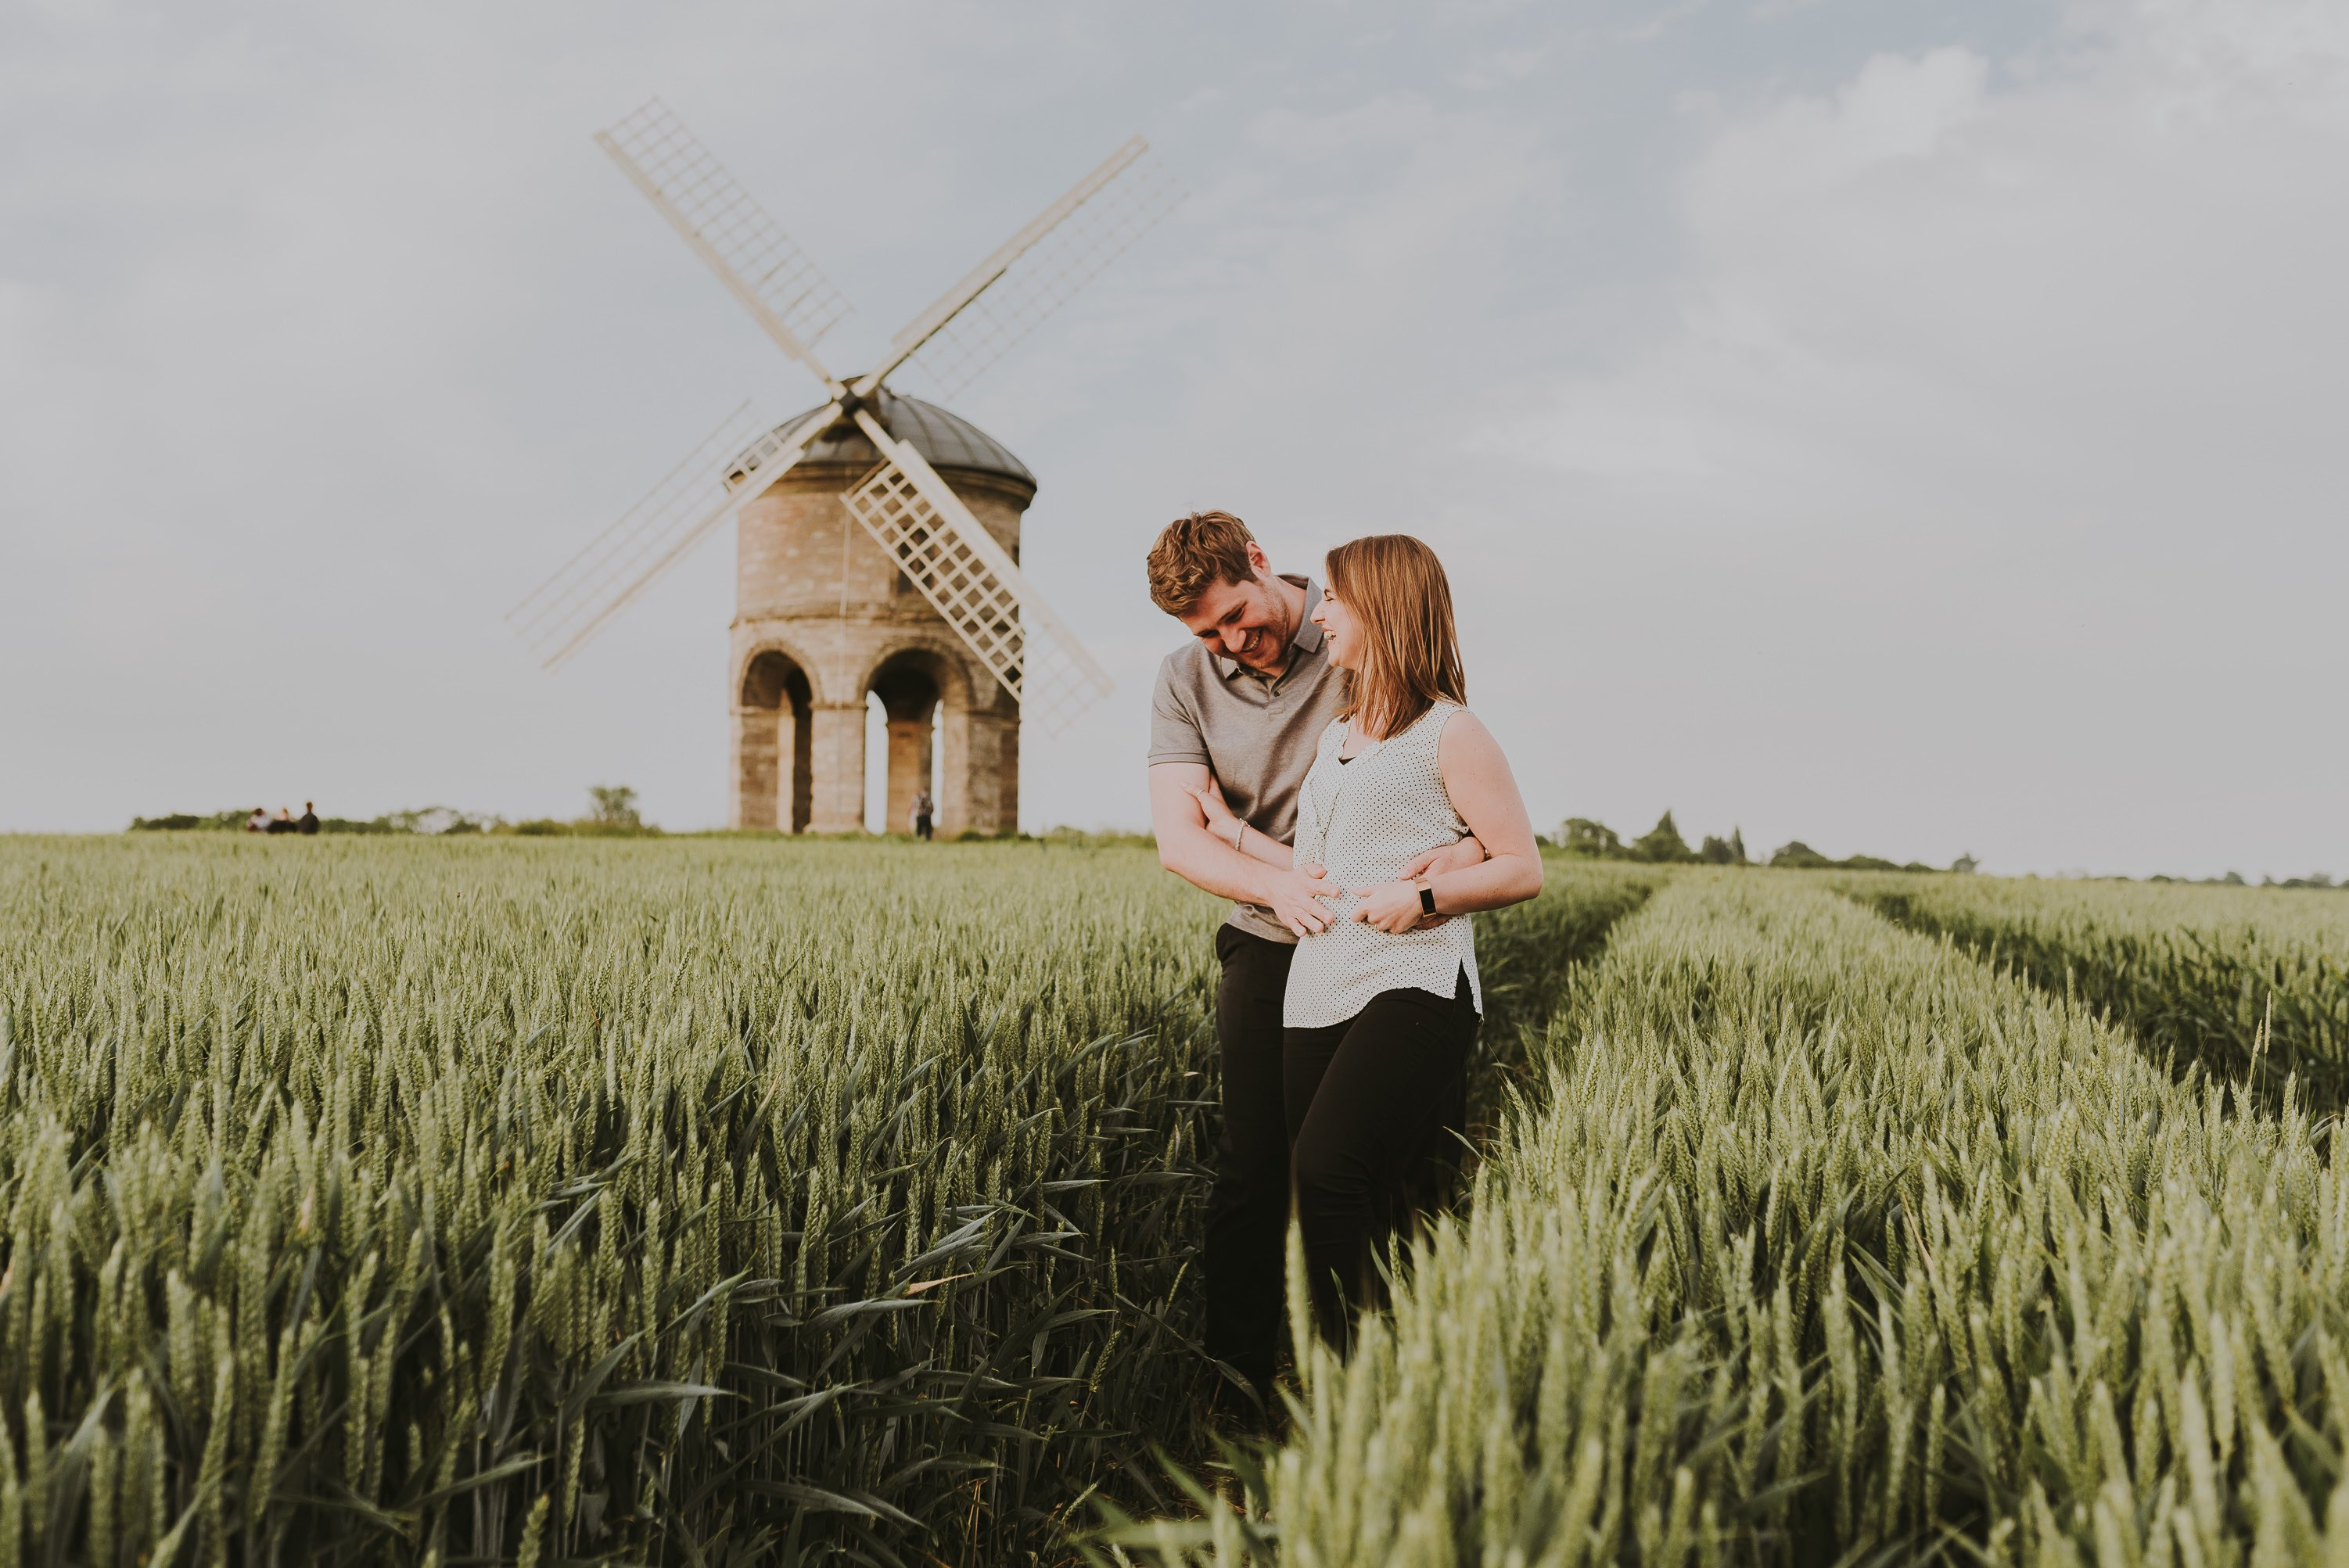 Chesterton Windmill photoshoot